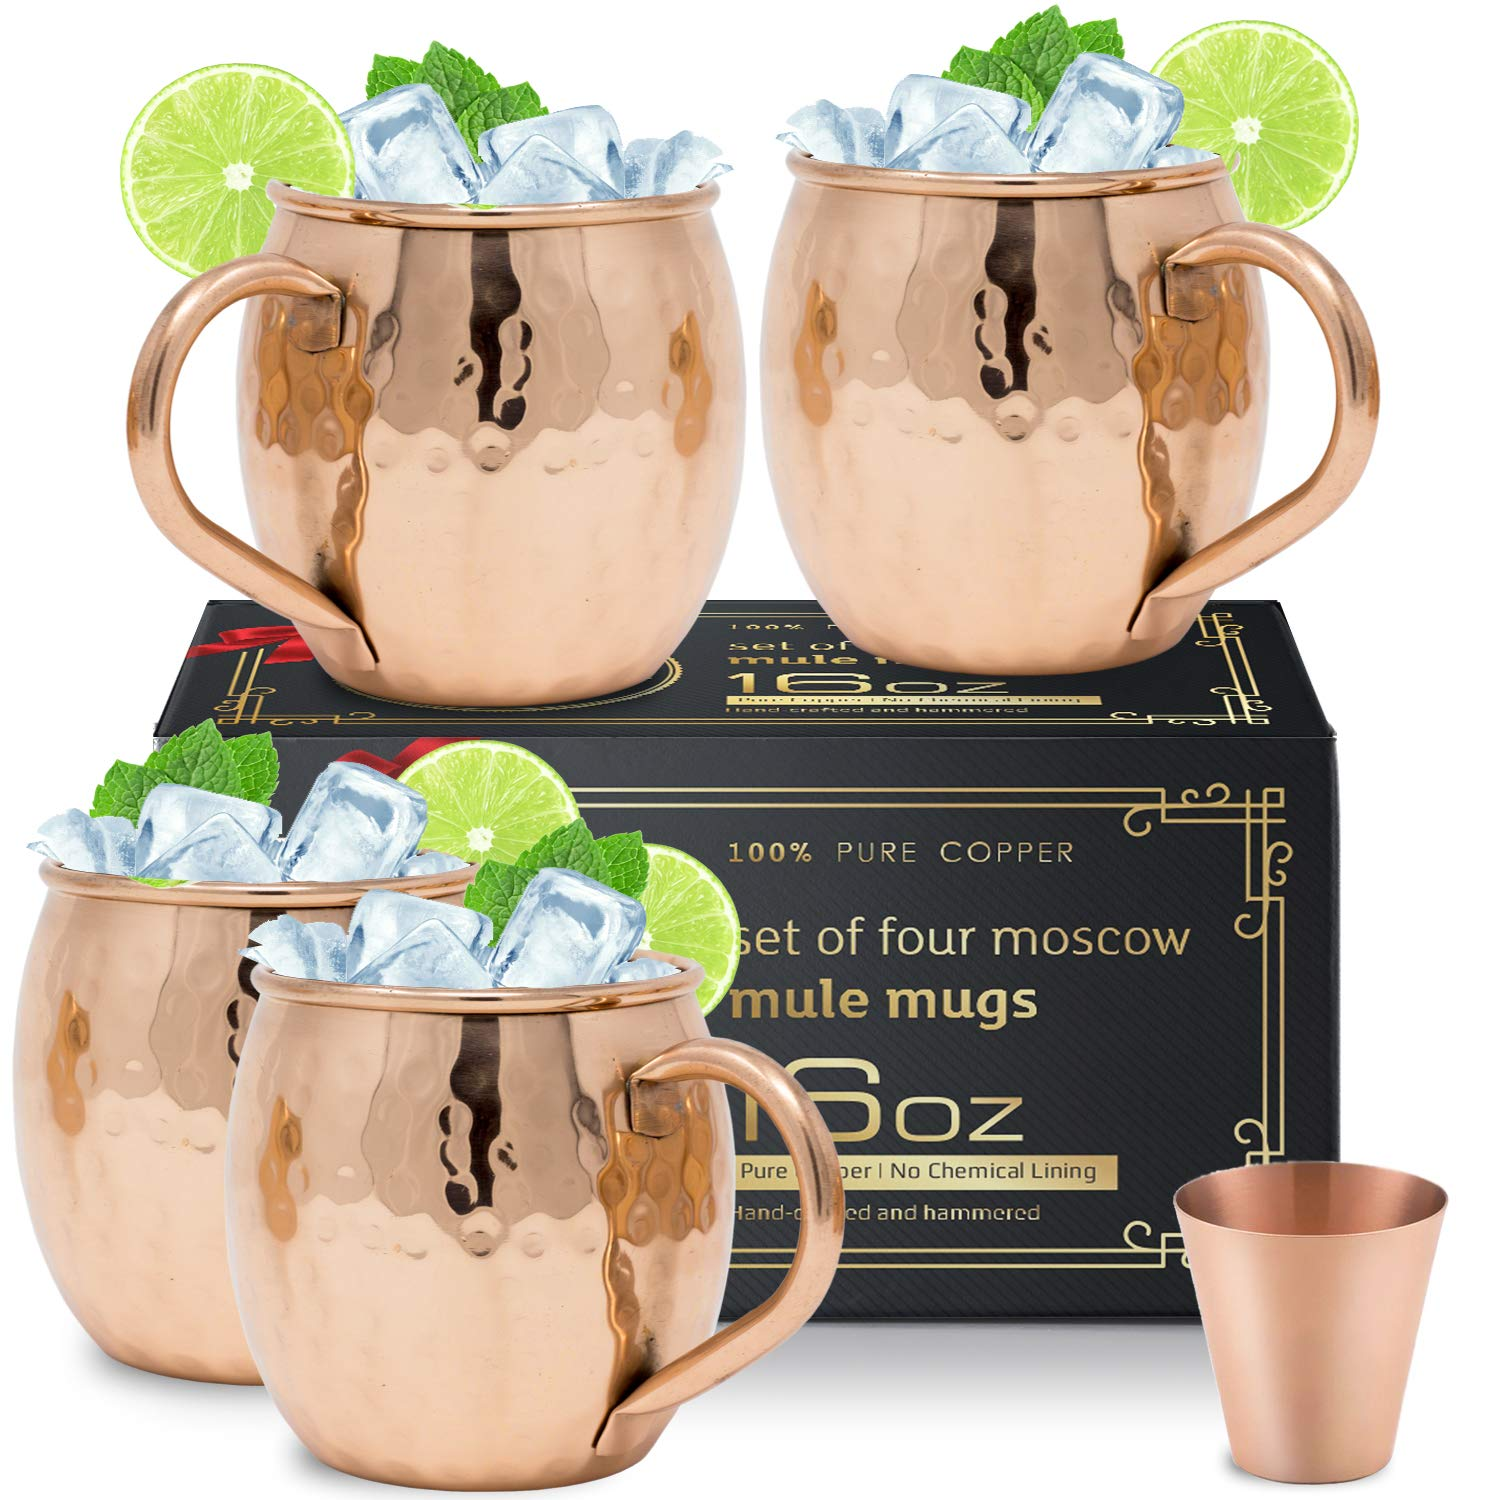 Moscow Mule Copper Mugs Set of 4 - Solid Copper Handcrafted Copper Mugs for Moscow Mule Cocktail - 16 Ounce - Shot Glass Included by Moscow-Mix